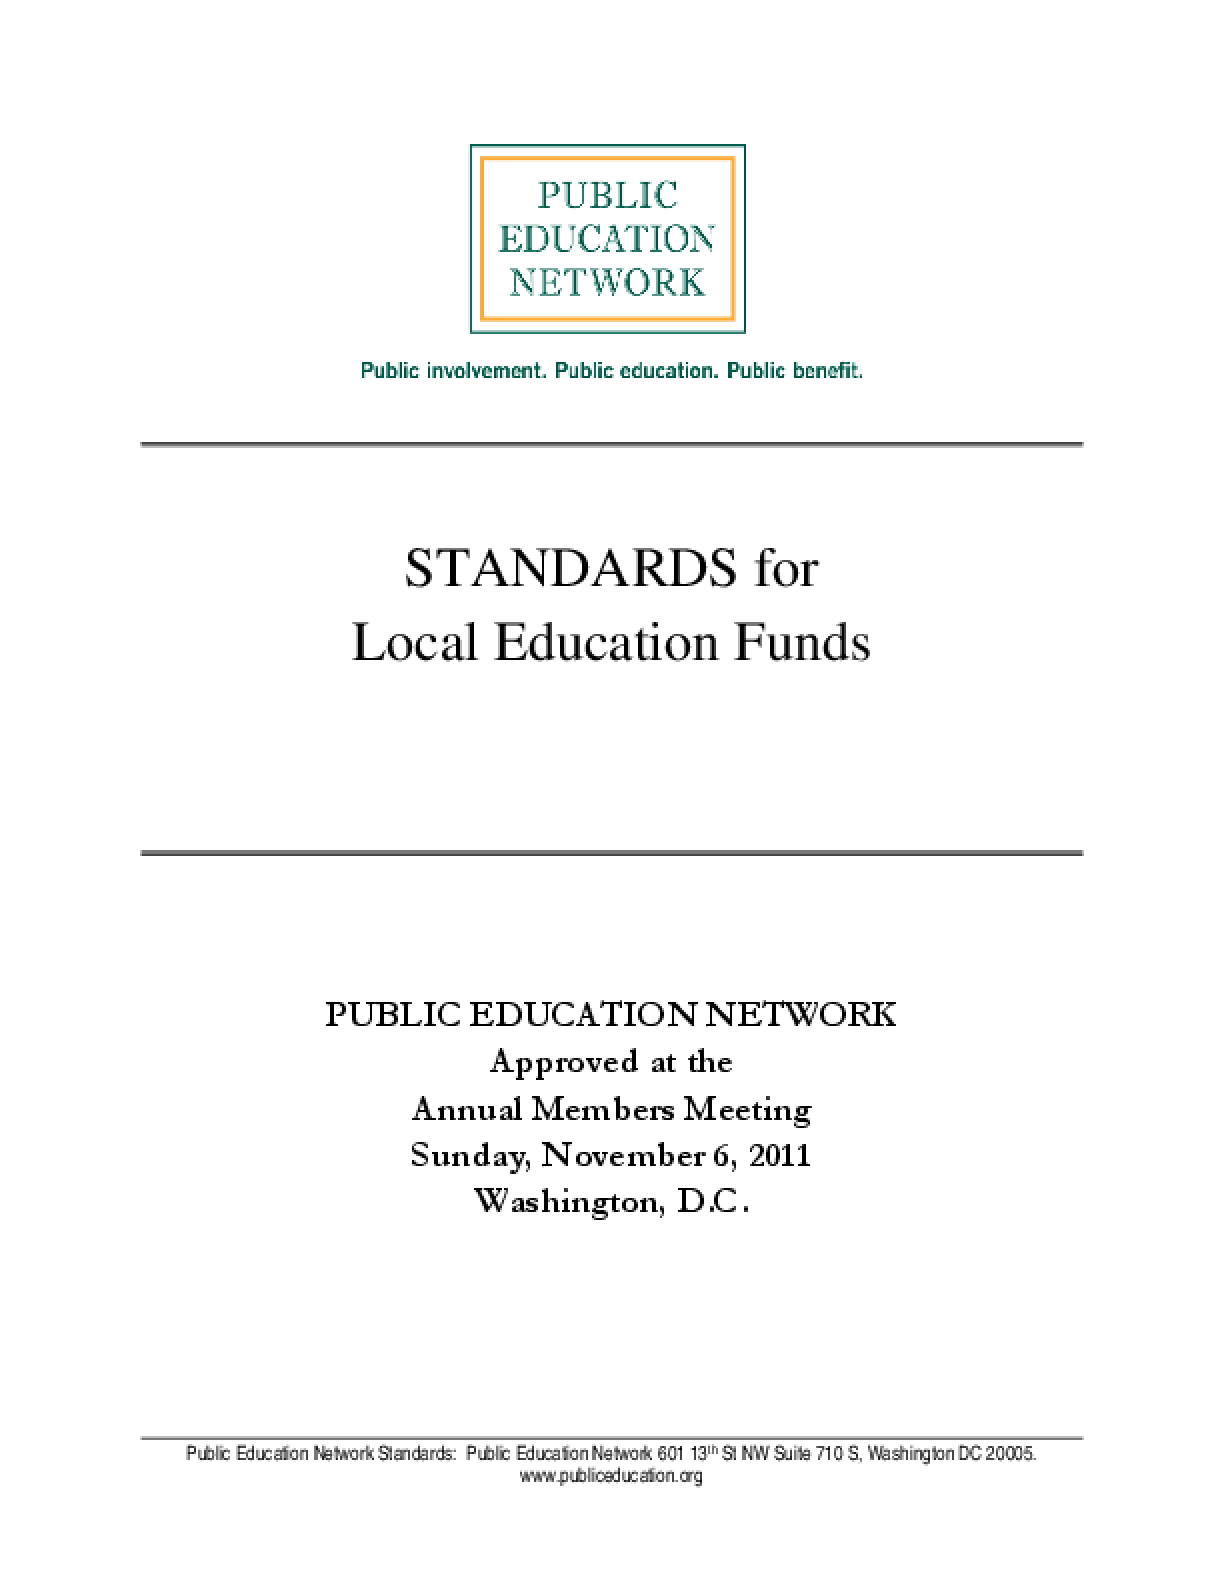 Standards for Local Education Funds (LEFs)